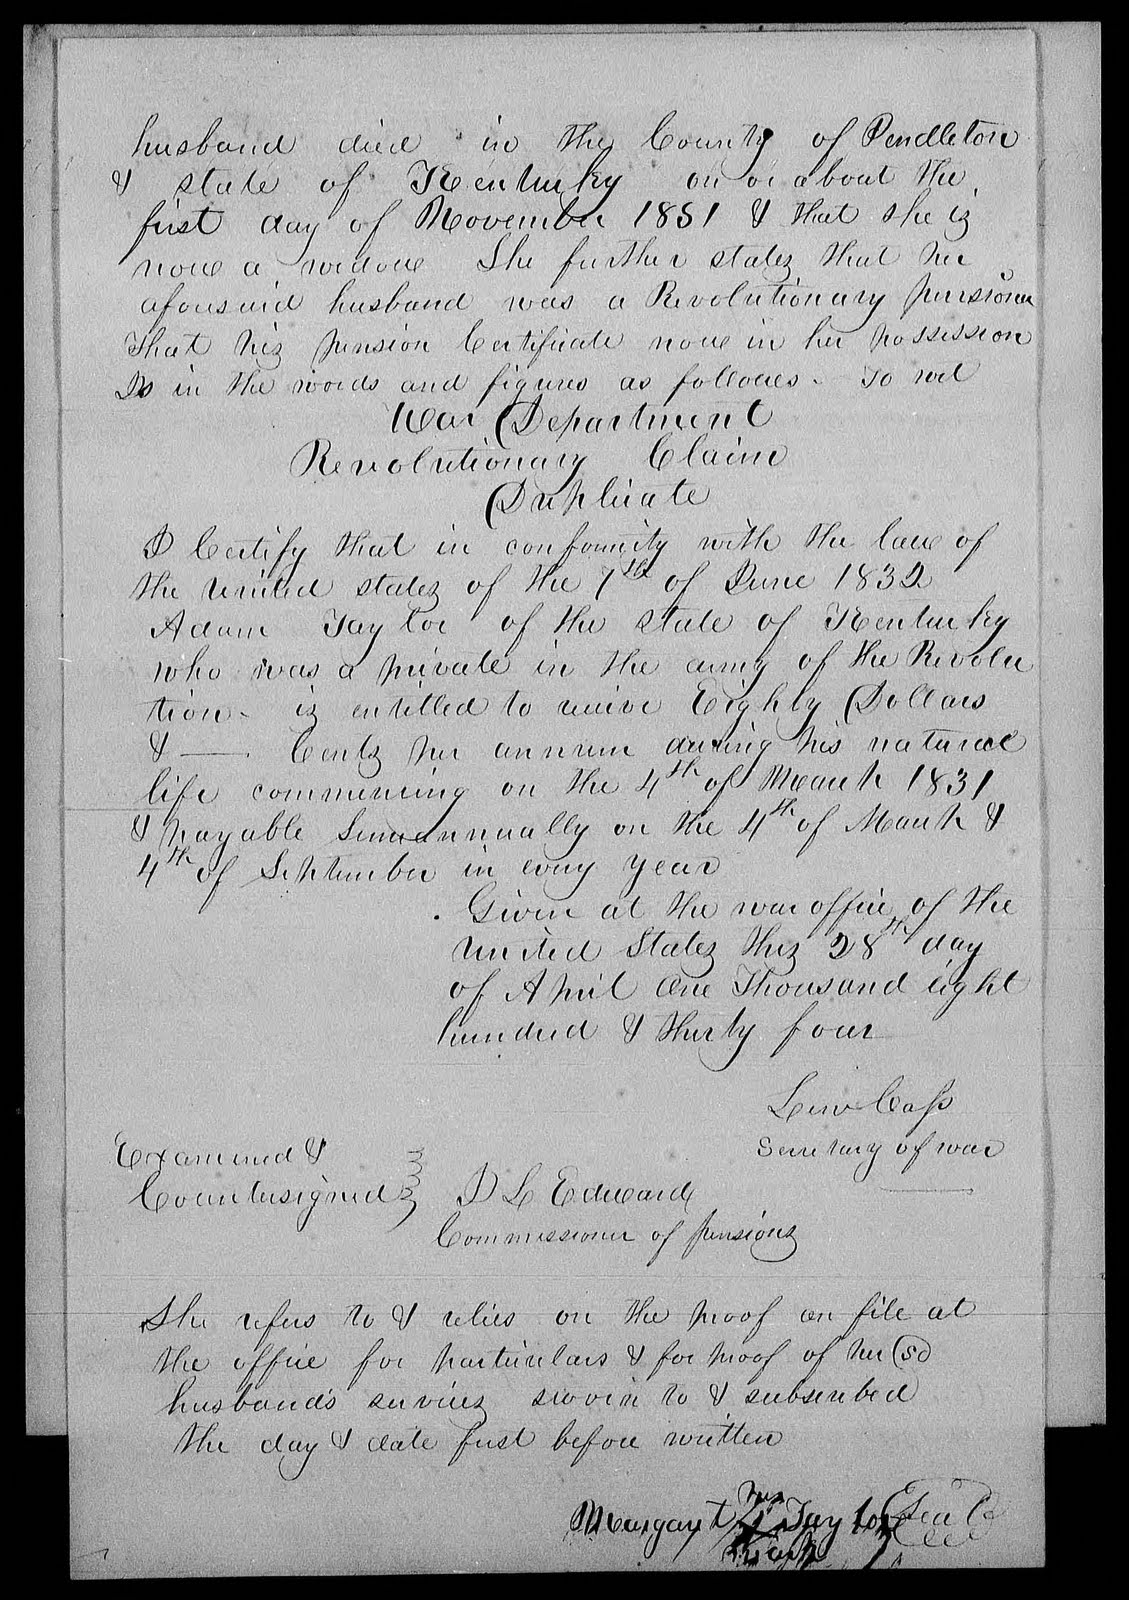 husband died in the county of pendleton state of kentucky on or about the first day of november 1851 that she is now a widow